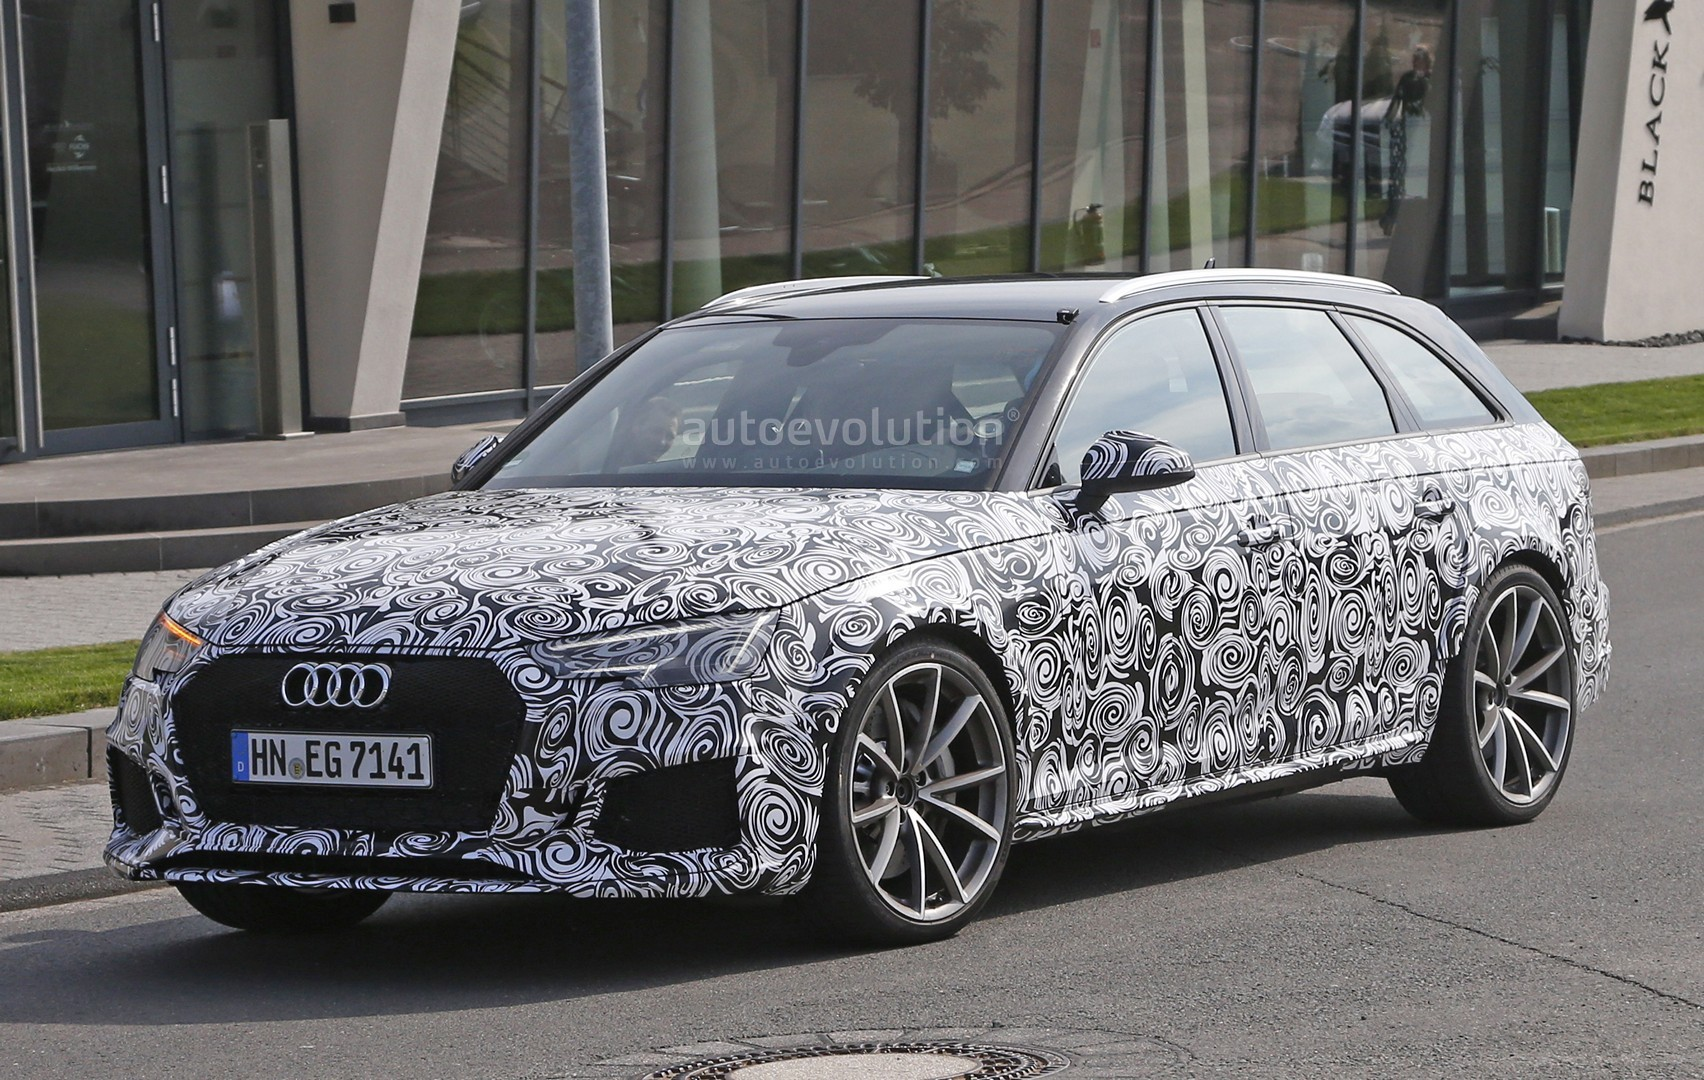 Spyshots: 2018 Audi RS4 Avant Prototype Looks Very Muscular - autoevolution